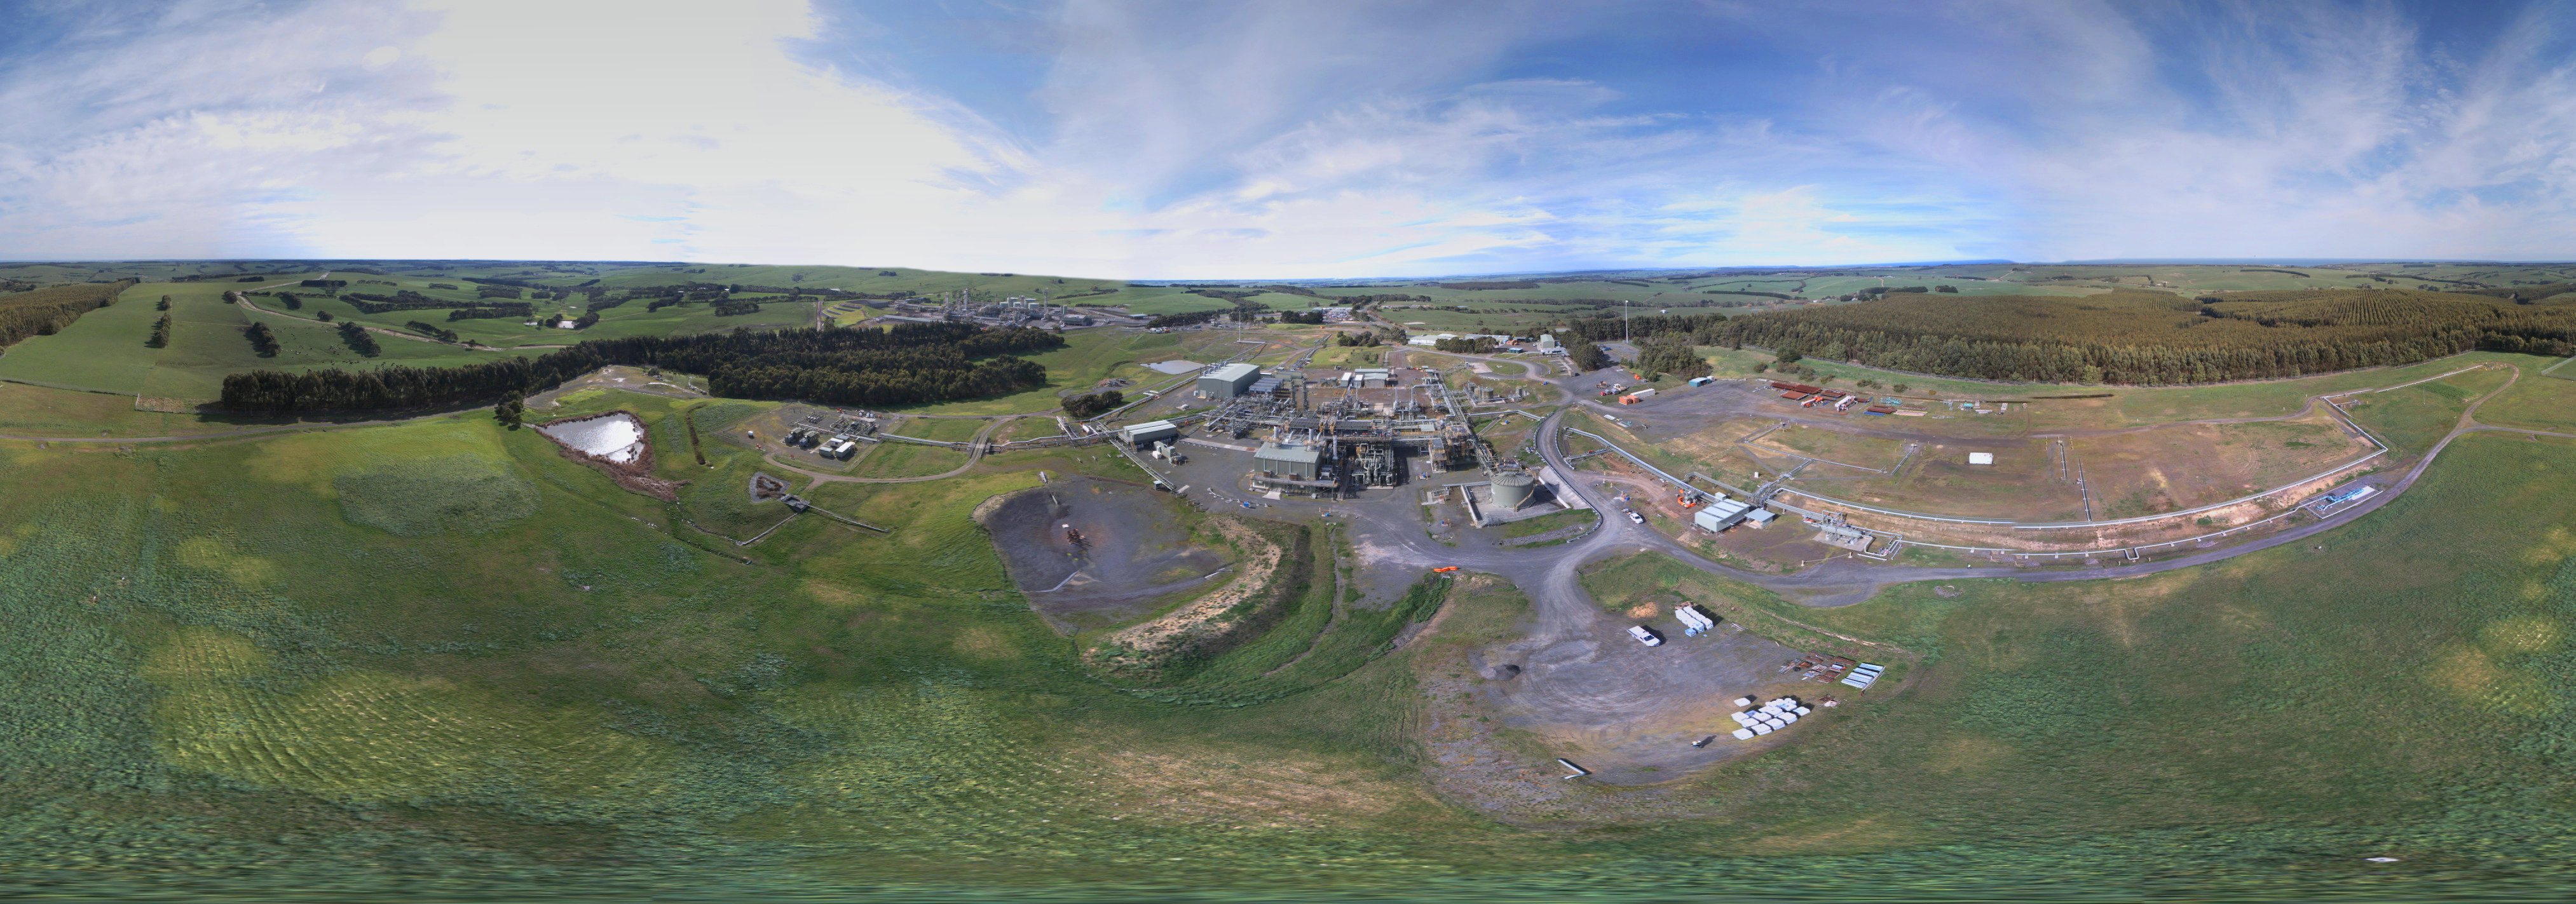 IONA Plant 360 VR image for facebook